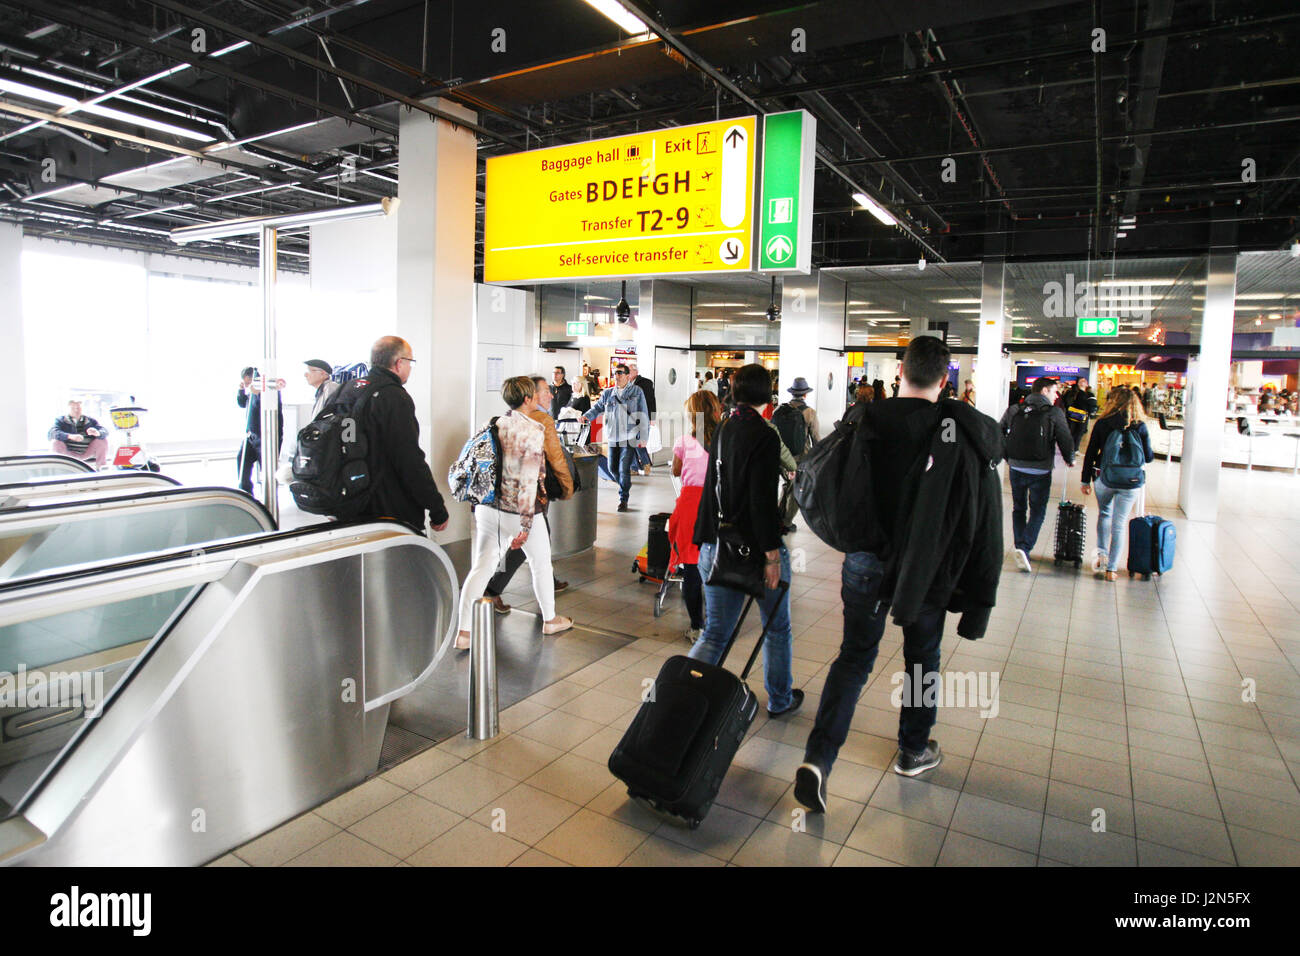 Travelers are seen in the arrival area at  Schiphol Airport on April 29, 2017 in Amsterdam, Netherlands. Schiphol - Stock Image